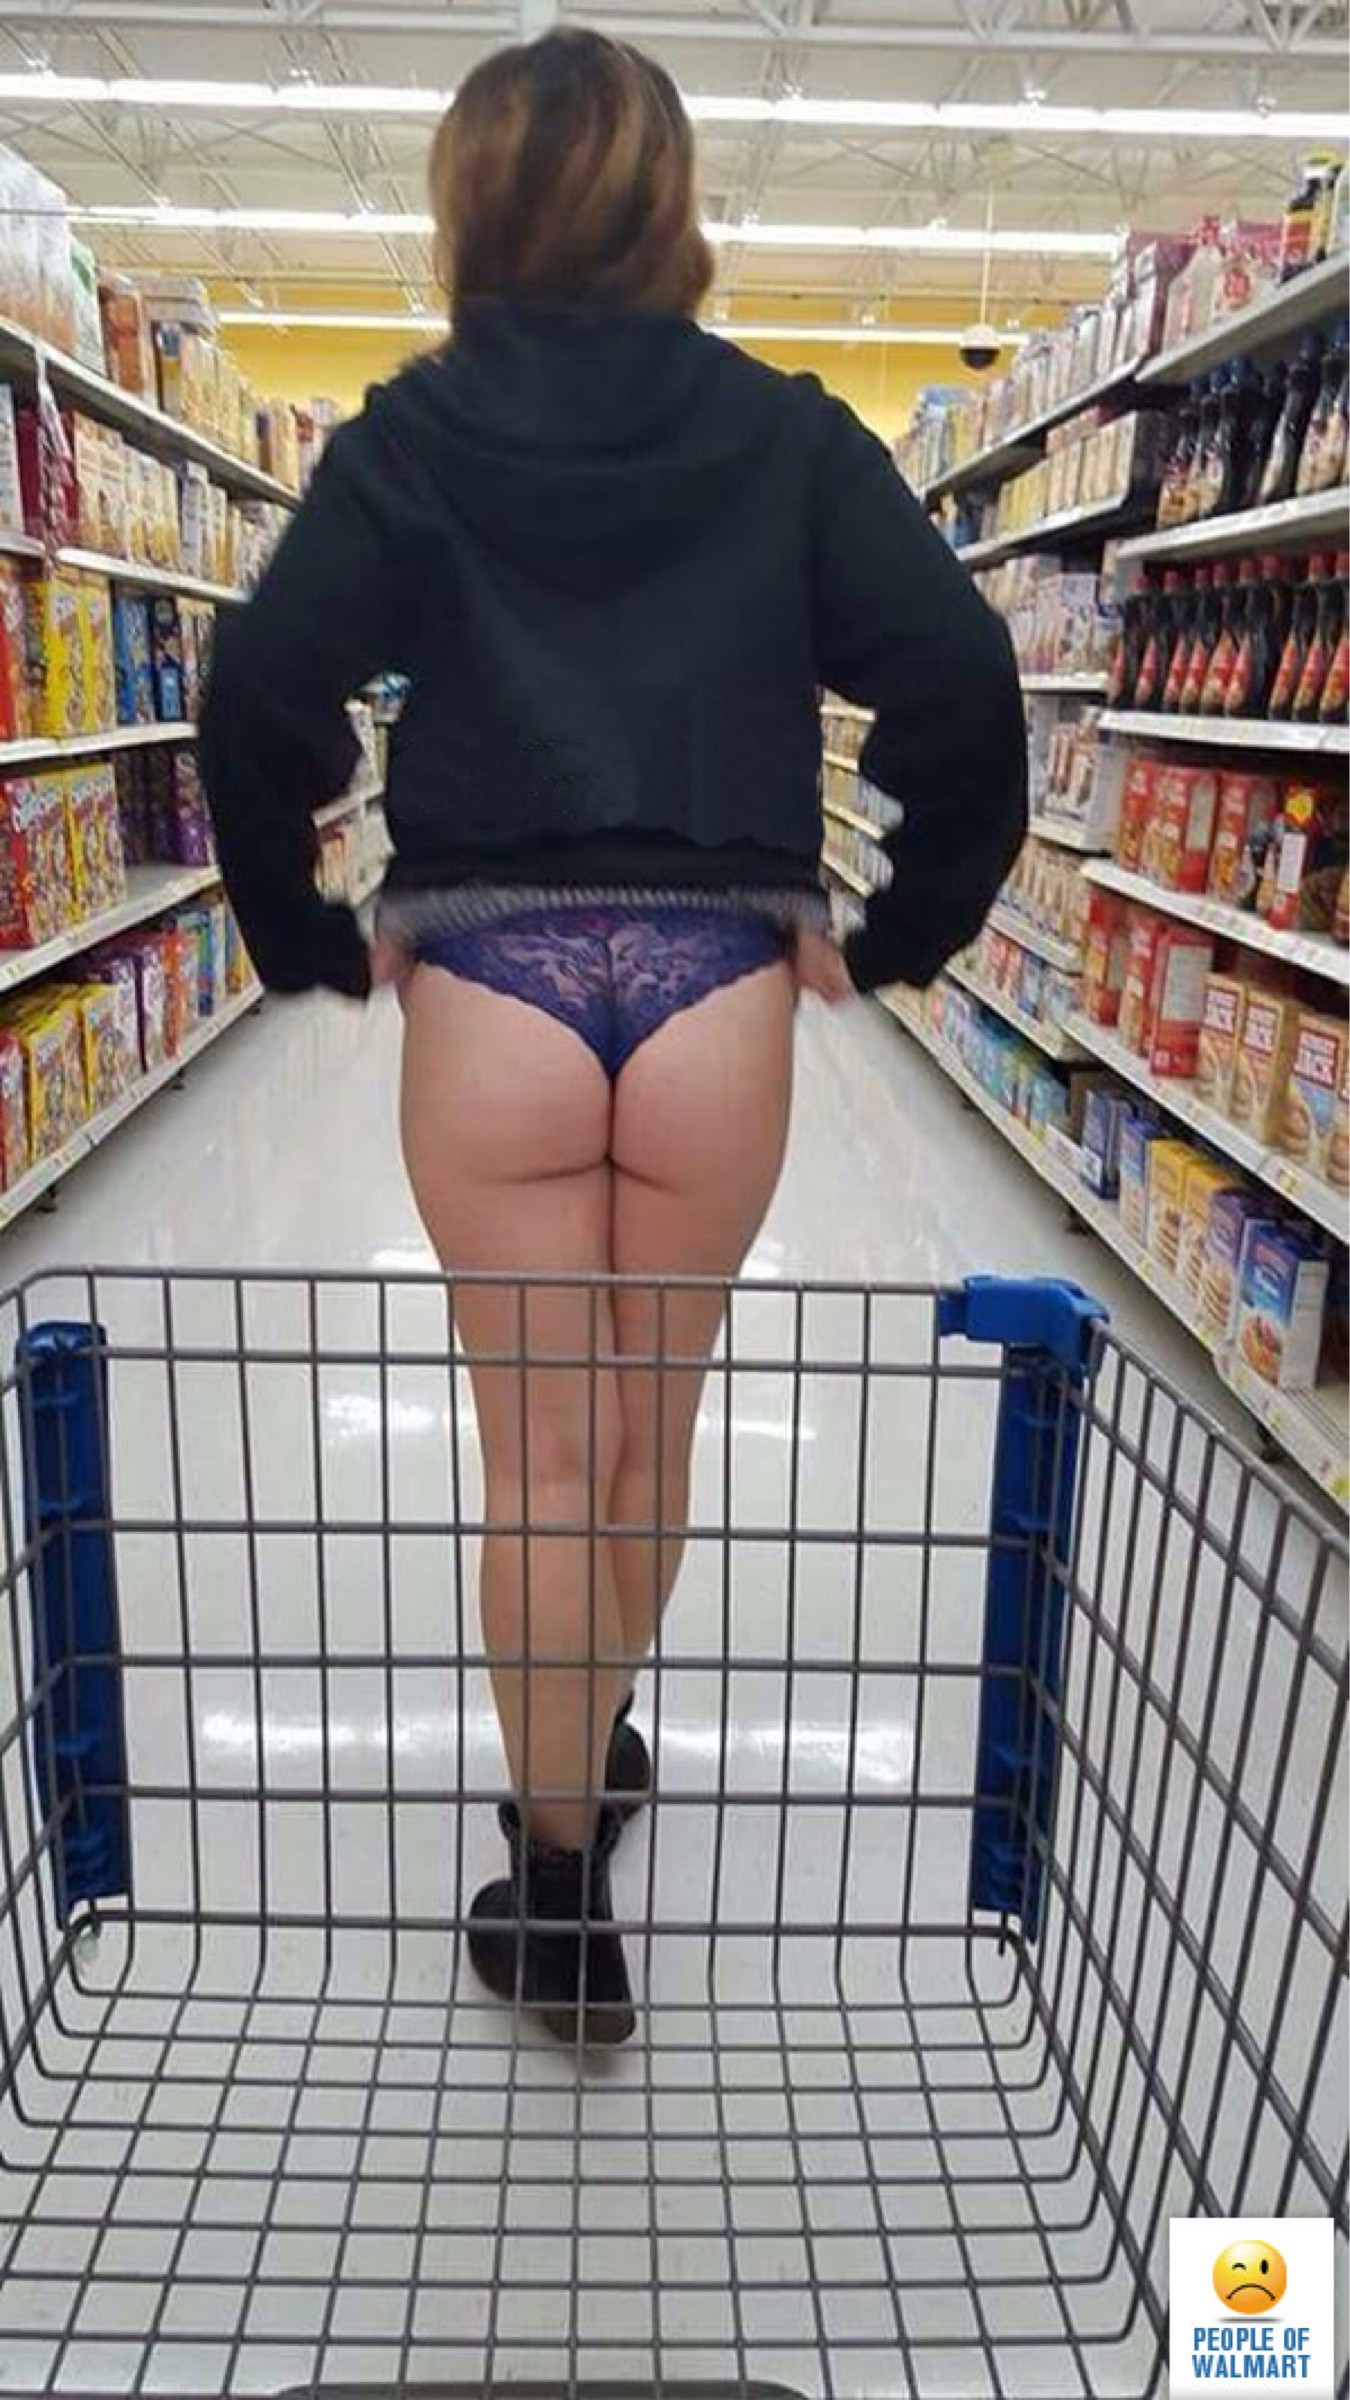 6c8c44d4bfc3 You can carry guns into Walmart, but pants are optional. Got it.